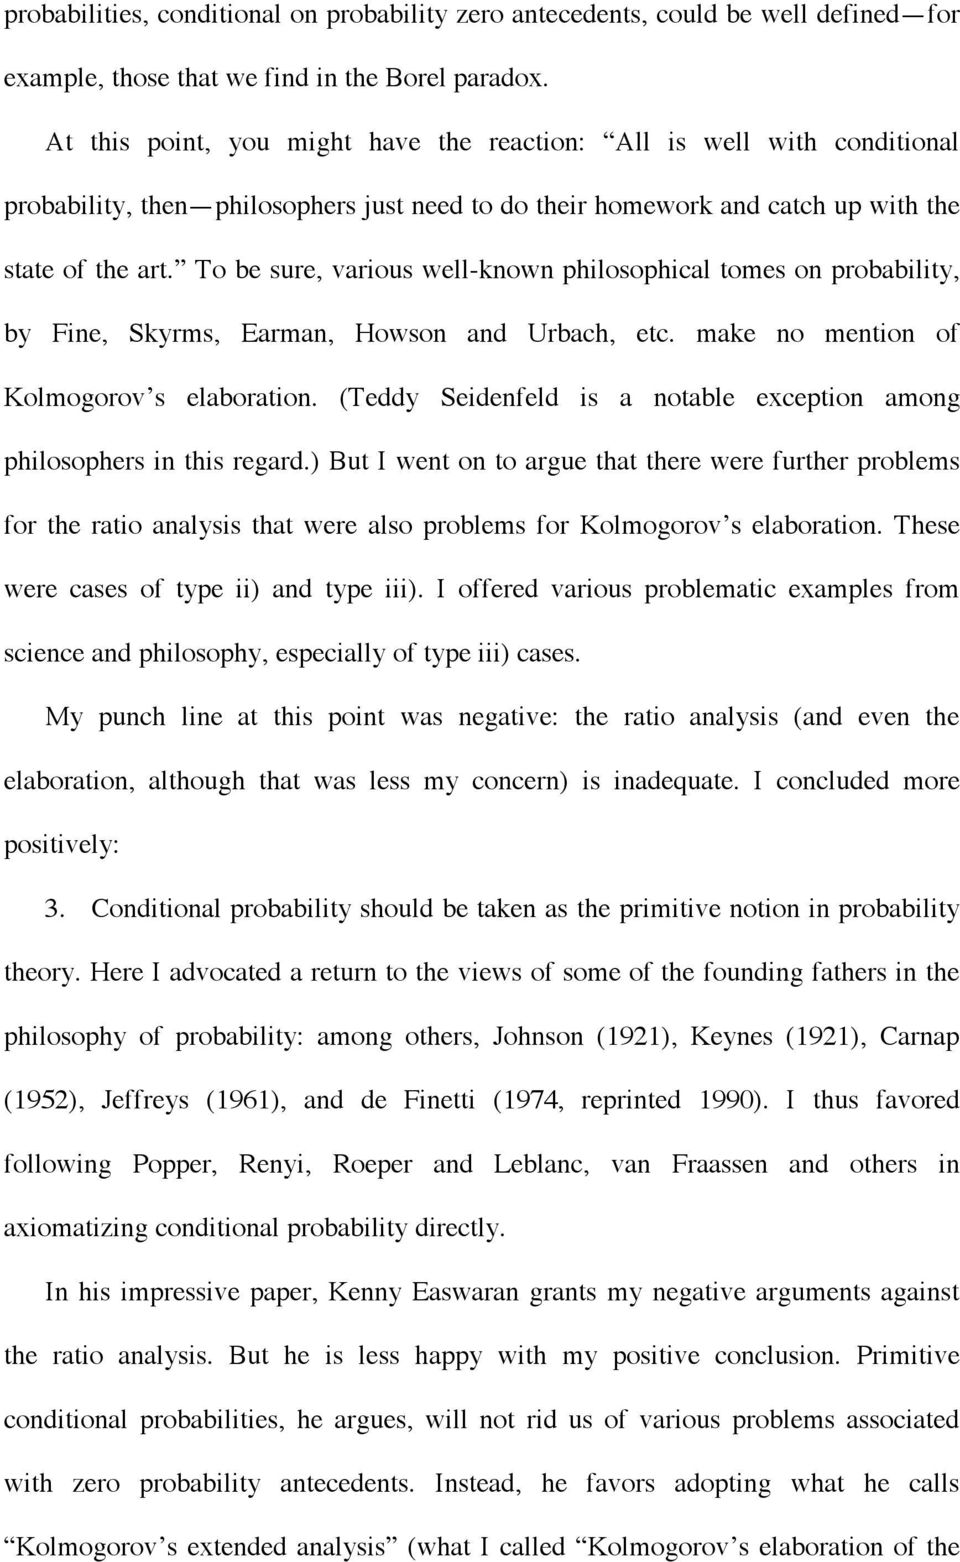 To be sure, various well-known philosophical tomes on probability, by Fine, Skyrms, Earman, Howson and Urbach, etc. make no mention of Kolmogorov s elaboration.